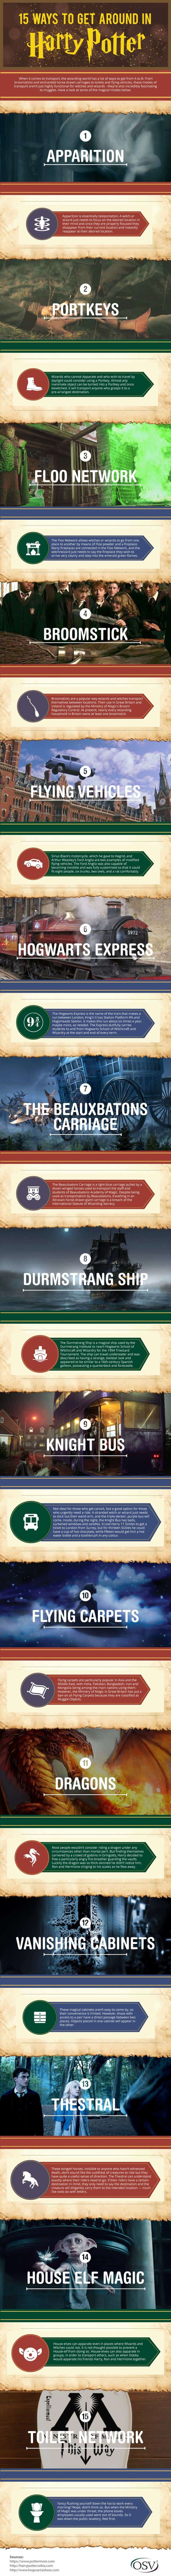 Infographic: Getting from A to B like Harry Potter Infographic